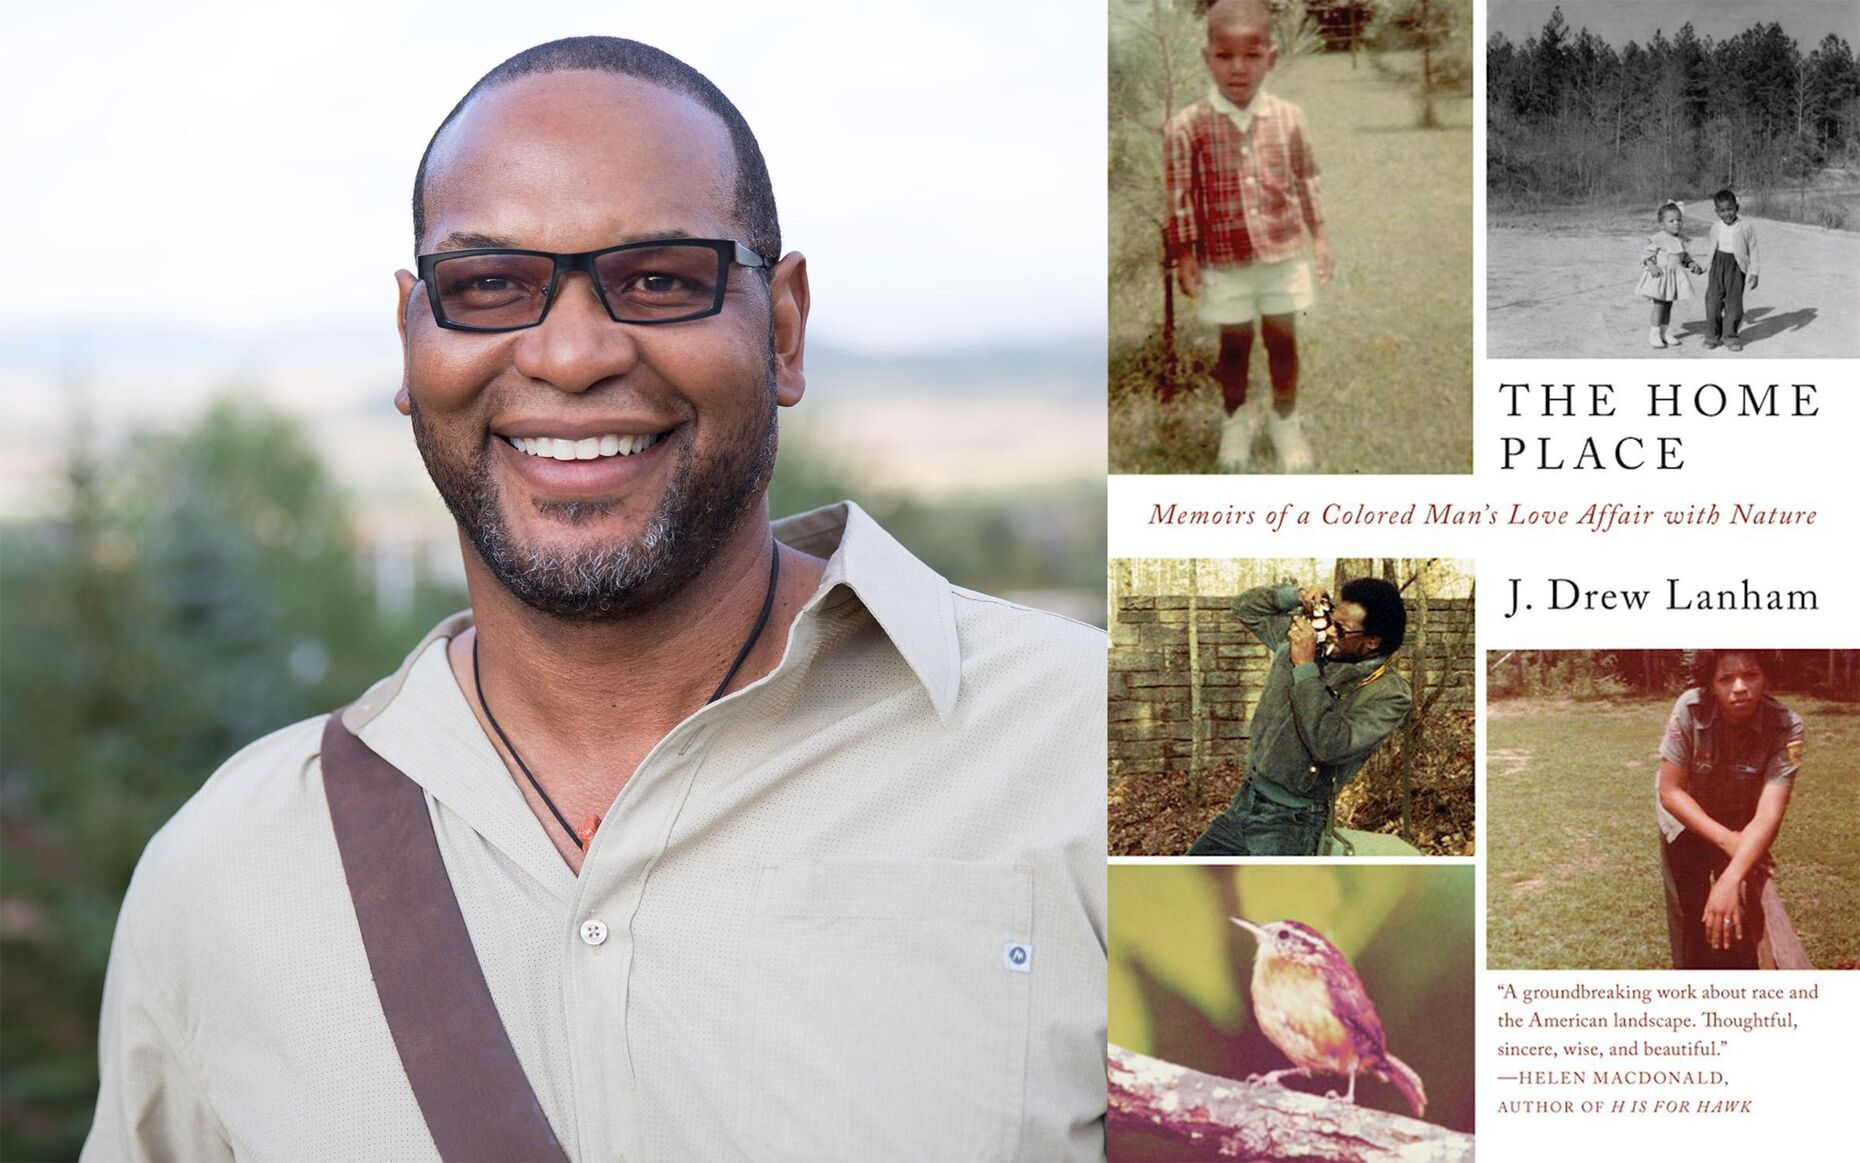 The Home Place: Memoirs of a Colored Man's Love Affair With Nature by African-American birder, wildlife conservation professor, naturalist, and hunter-conservationist, J. Drew Lanham